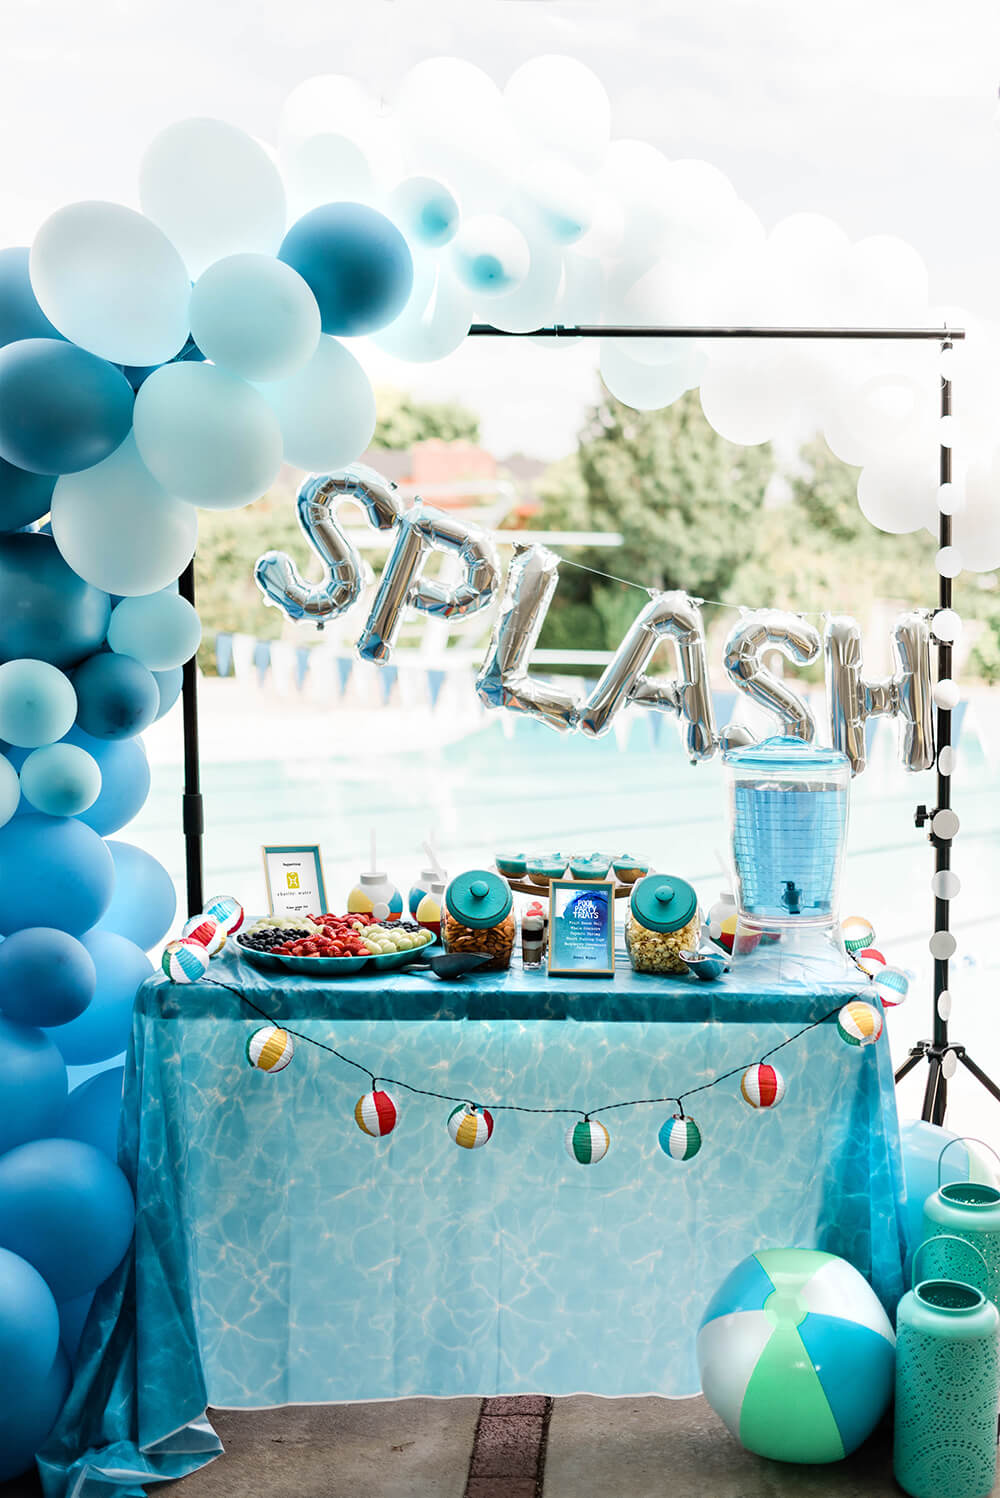 Make a splash pool party table